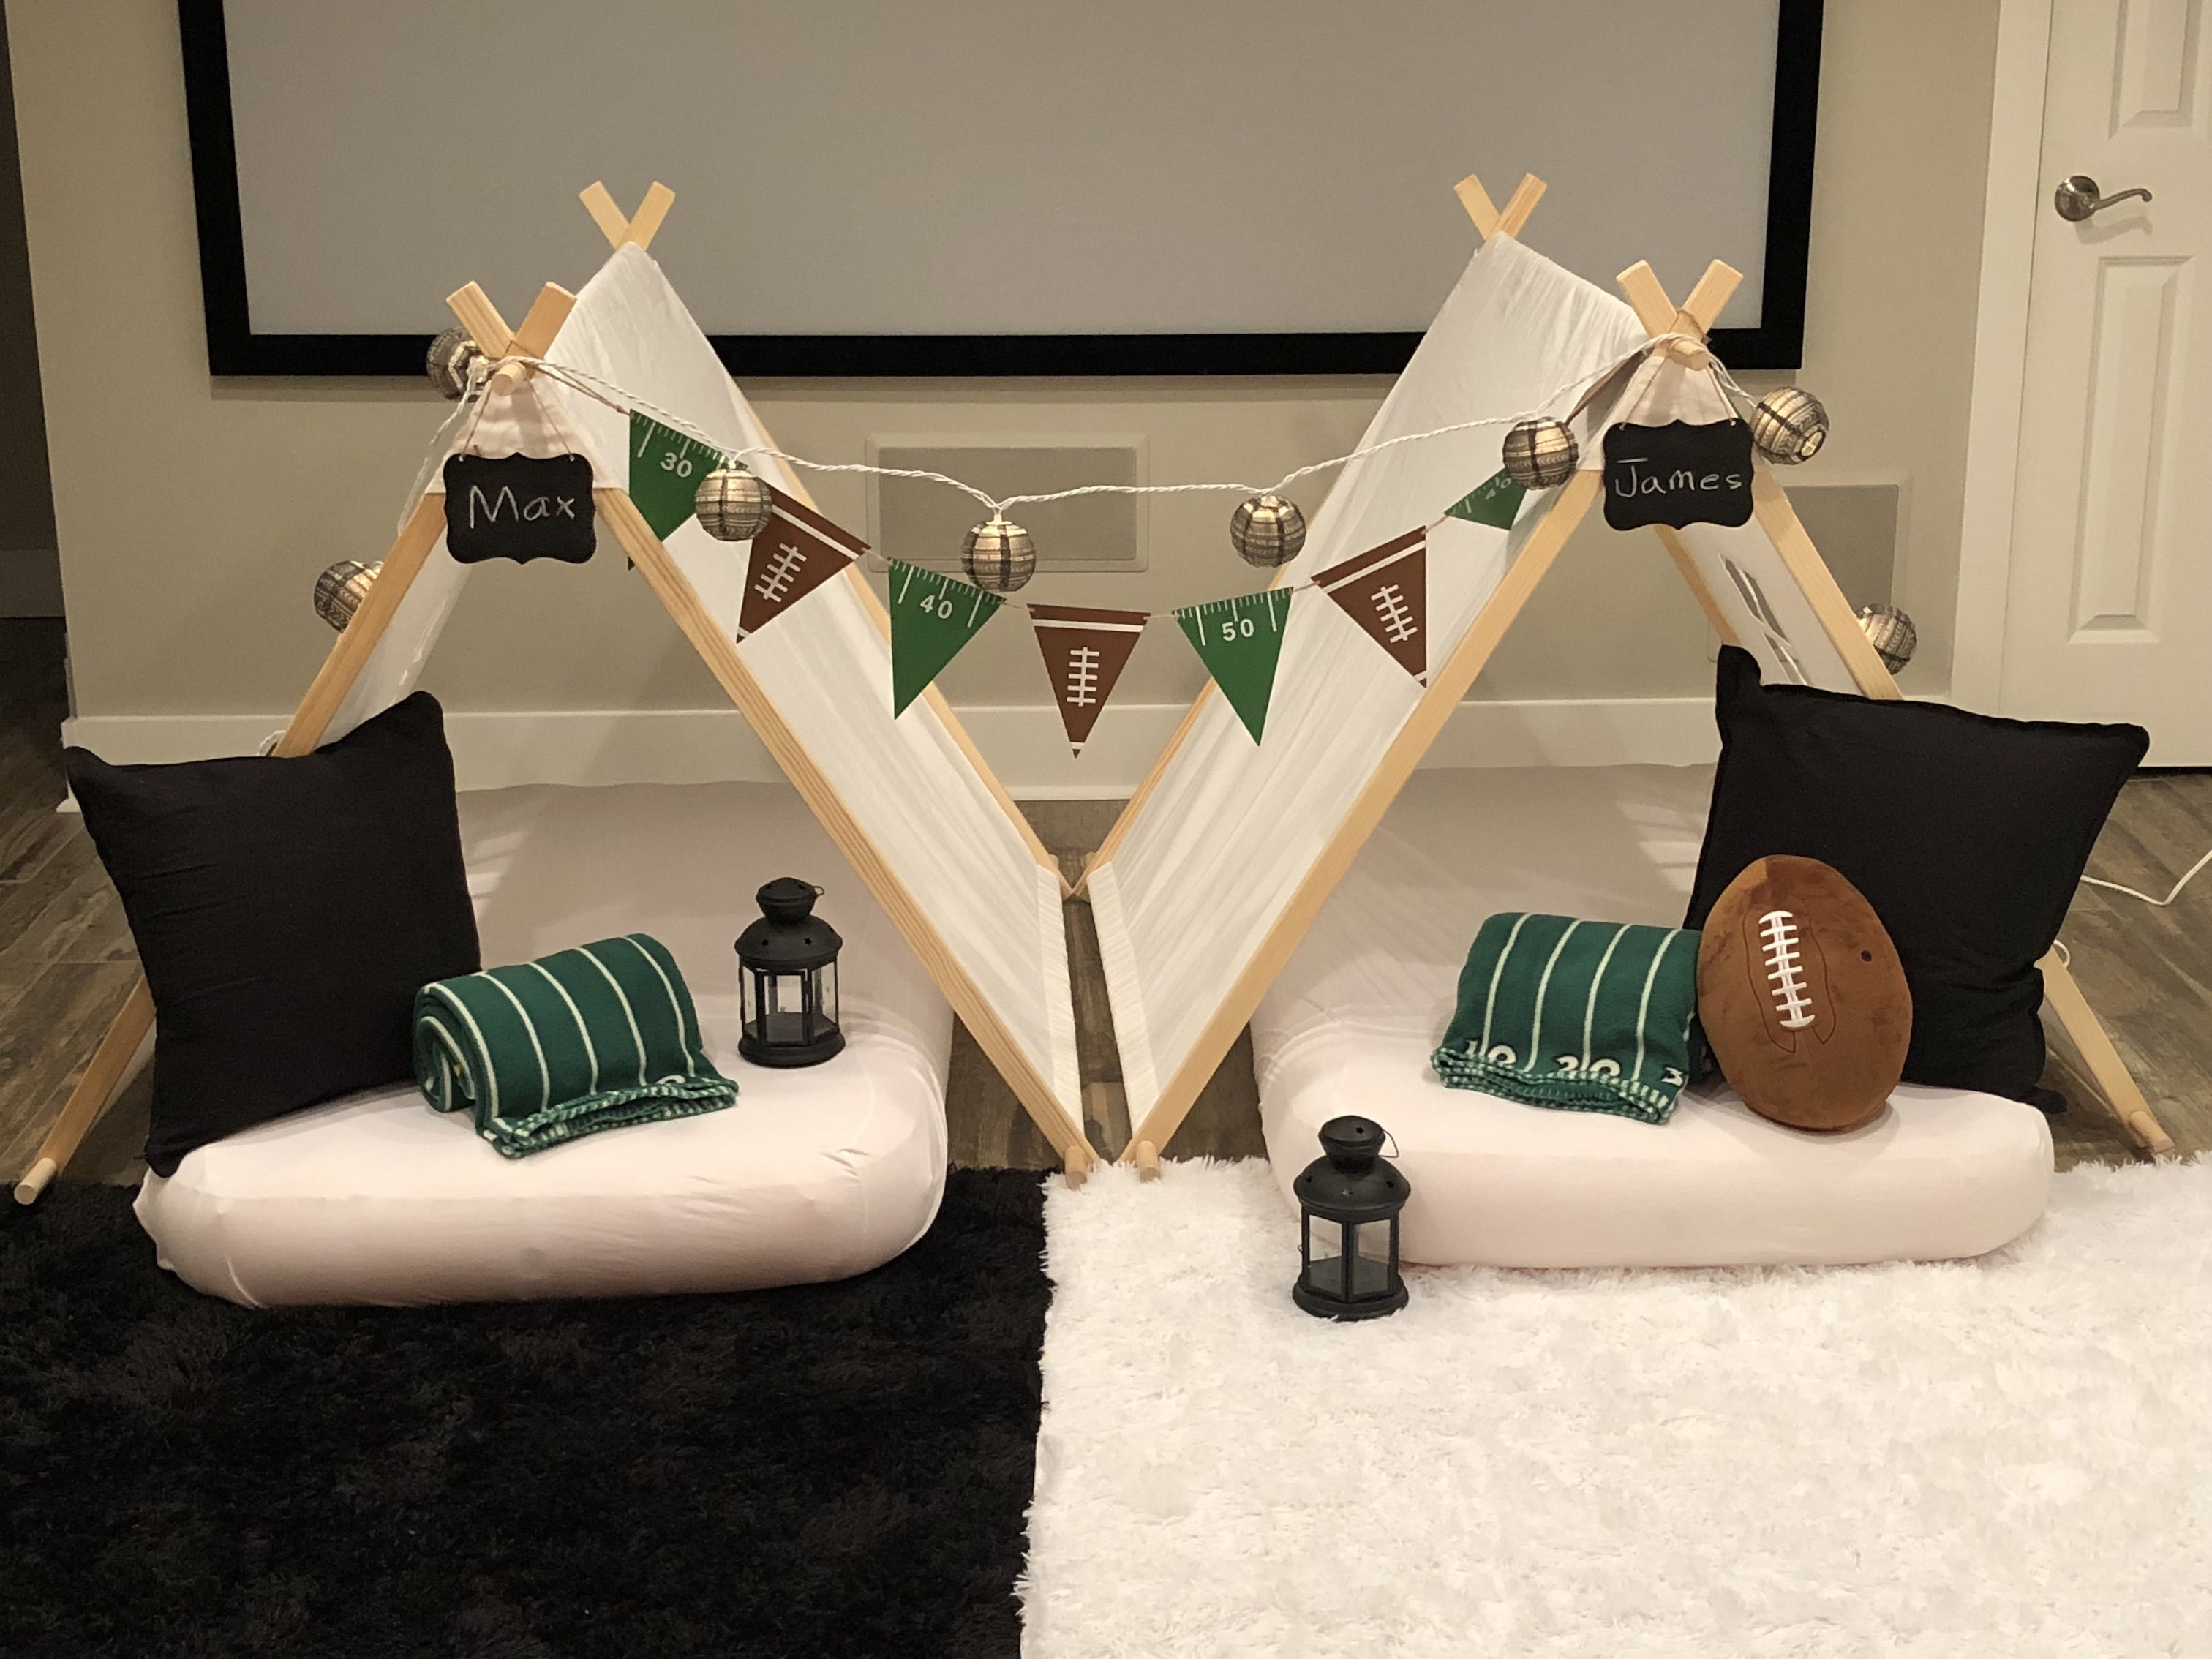 1st and 10 football theme check out our website to see